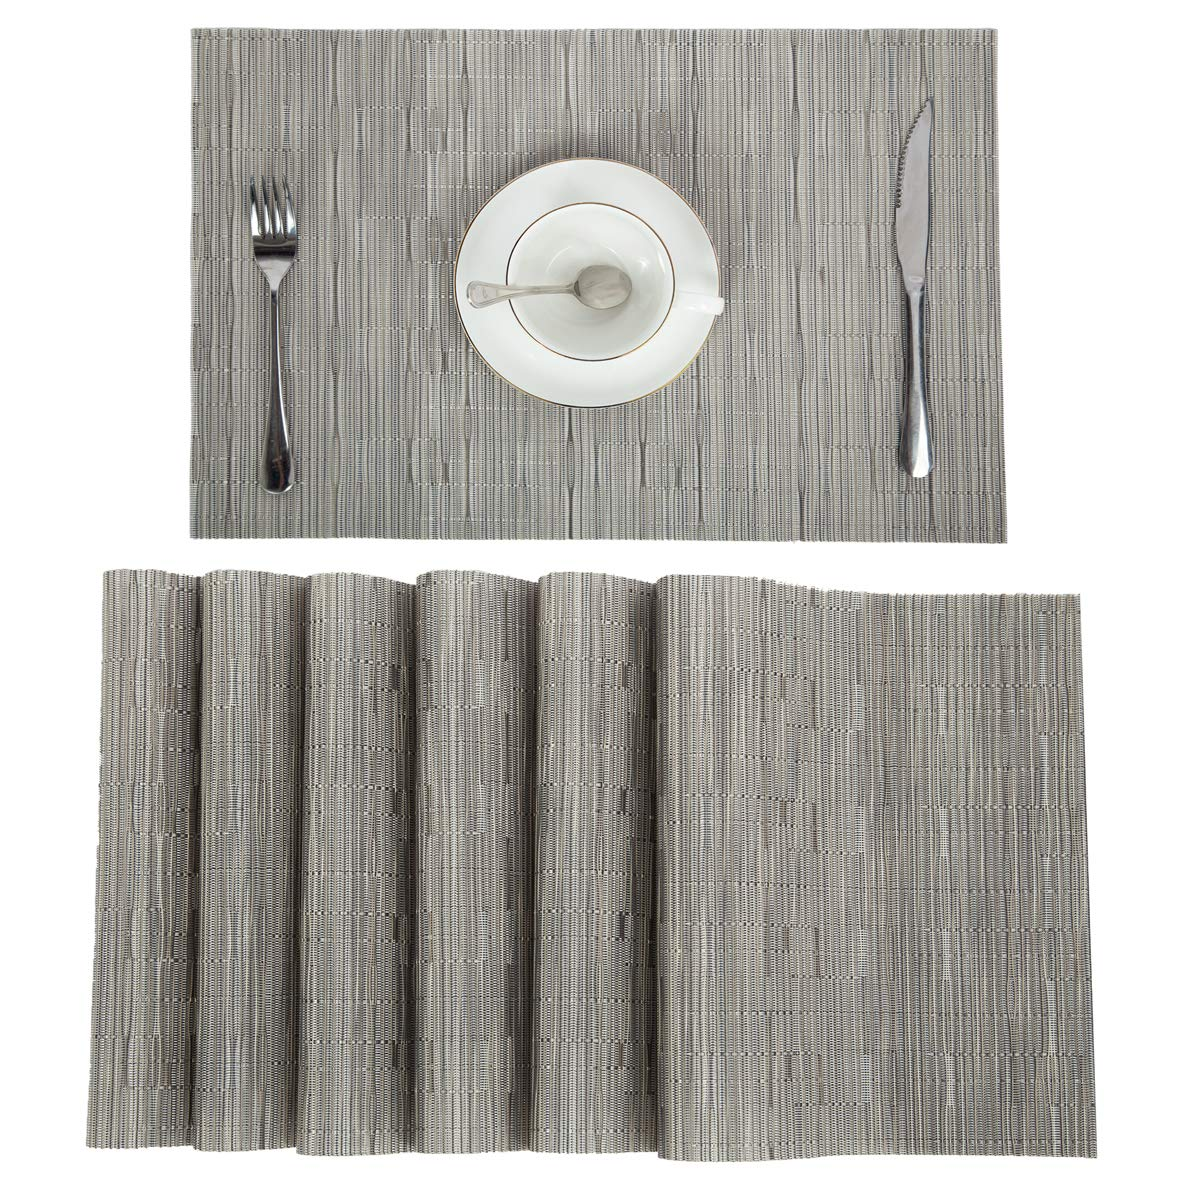 Pauwer PVC Placemats Set of 6 Washable Woven Vinyl Placemat for Kitchen Table Heat Resistant Non-Slip Kitchen Table Place Mats Wipe Clean (6pcs Placemats, Silver Grey)